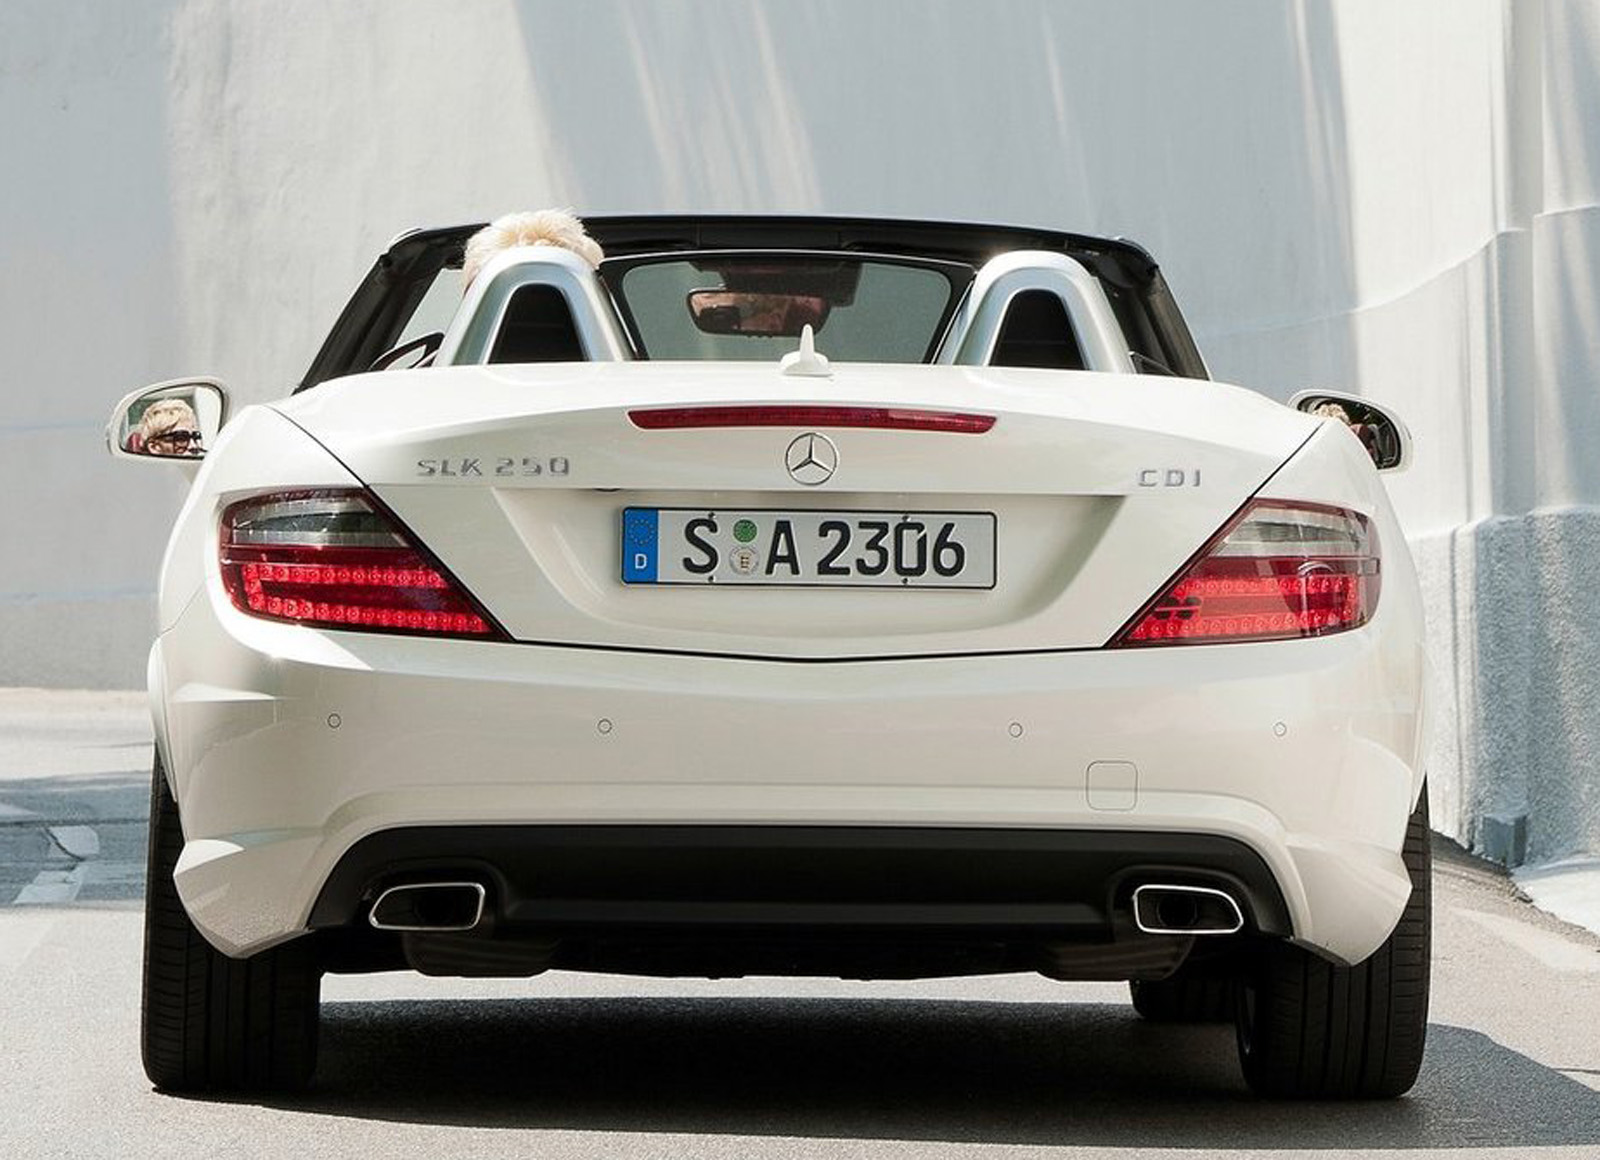 The new mercedes benz slk250 cdi can be ordered from 13 september 2011 the price including vat is 41 828 50